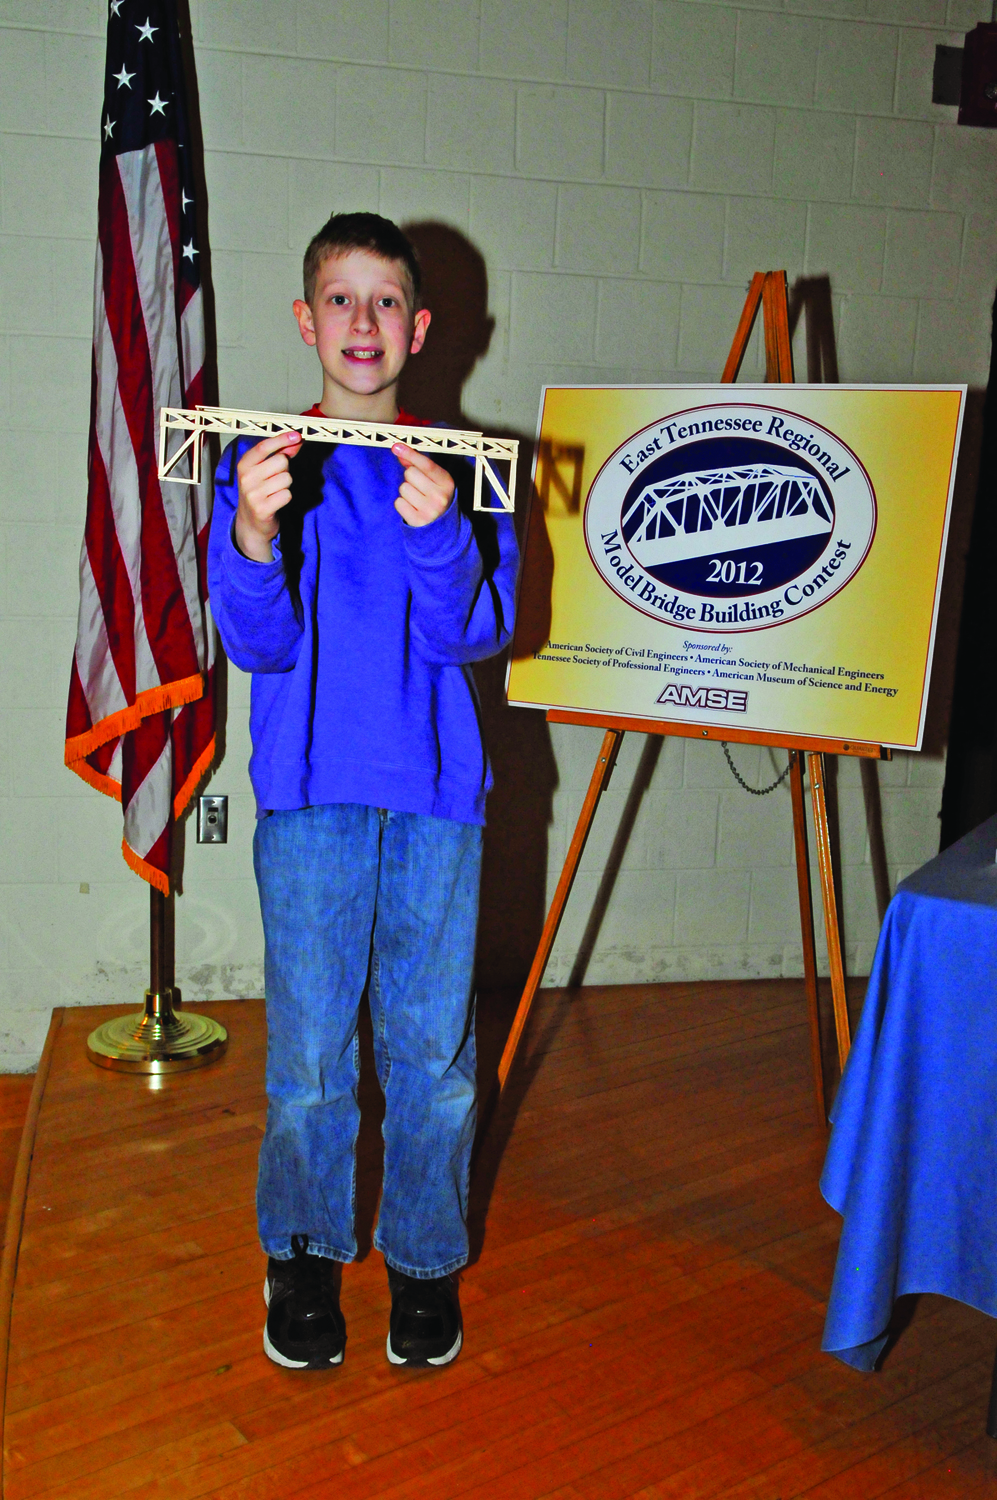 Noah Hylton, an Oak Ridge homeschool student, received second place for his model bridge in the Aesthetics category at the East Tennessee Model Bridge Buillding Contest.